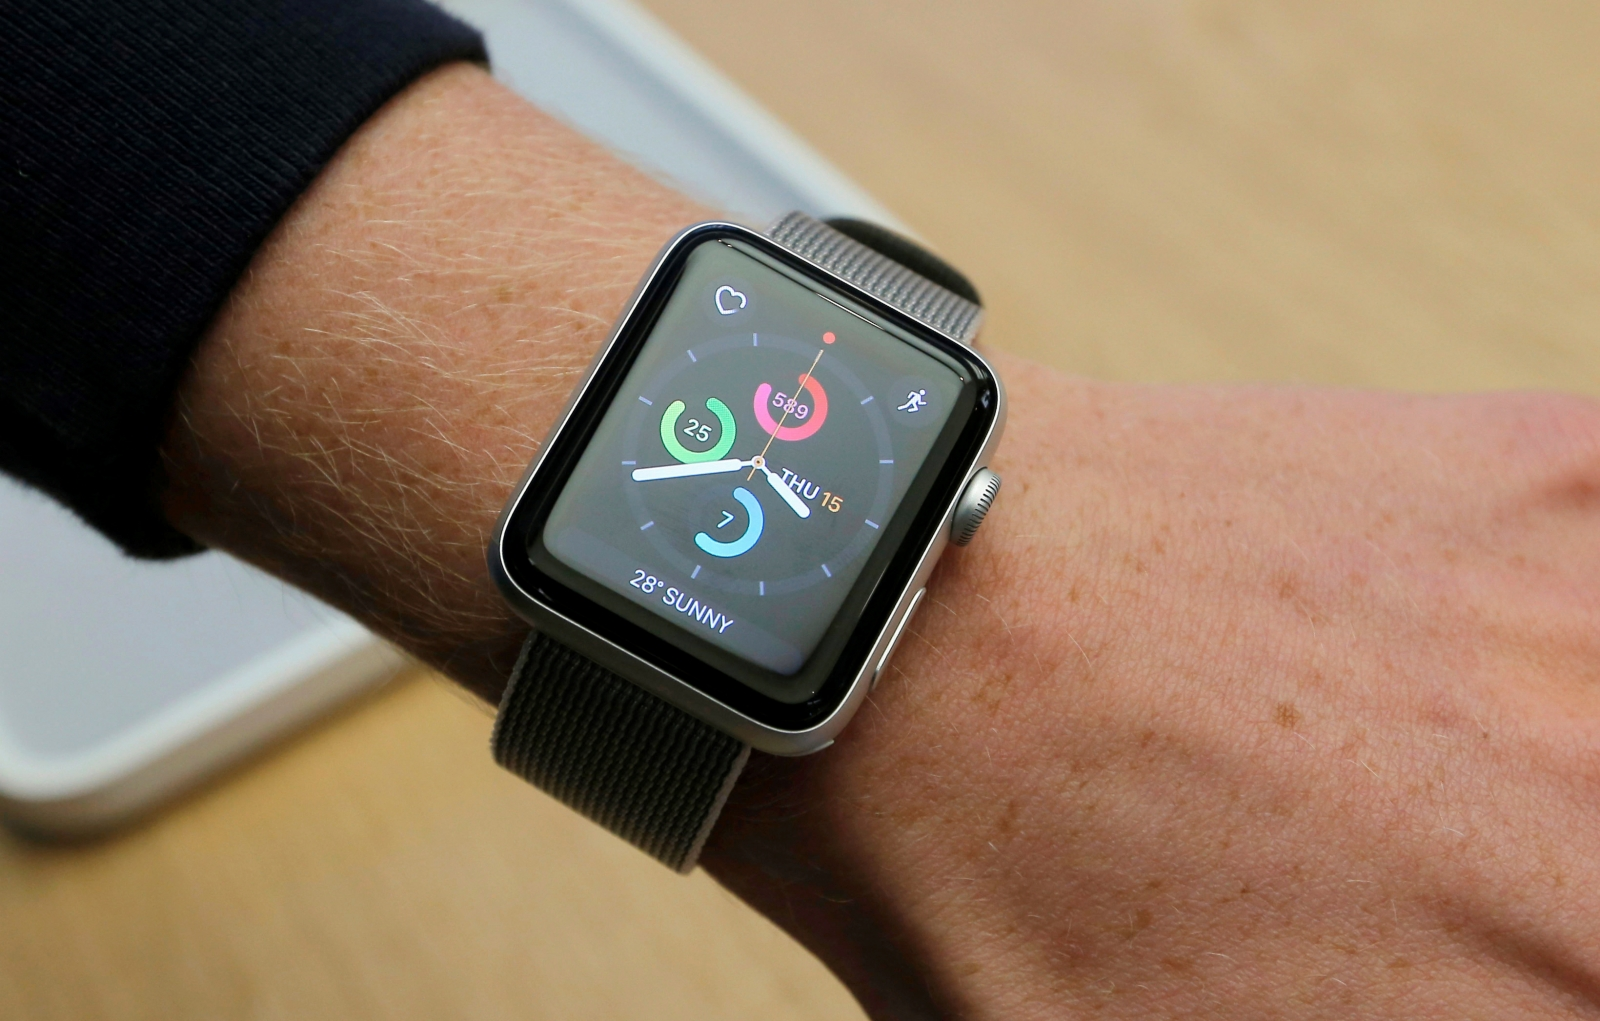 Apple Watch: Mobile Big Test of Clock